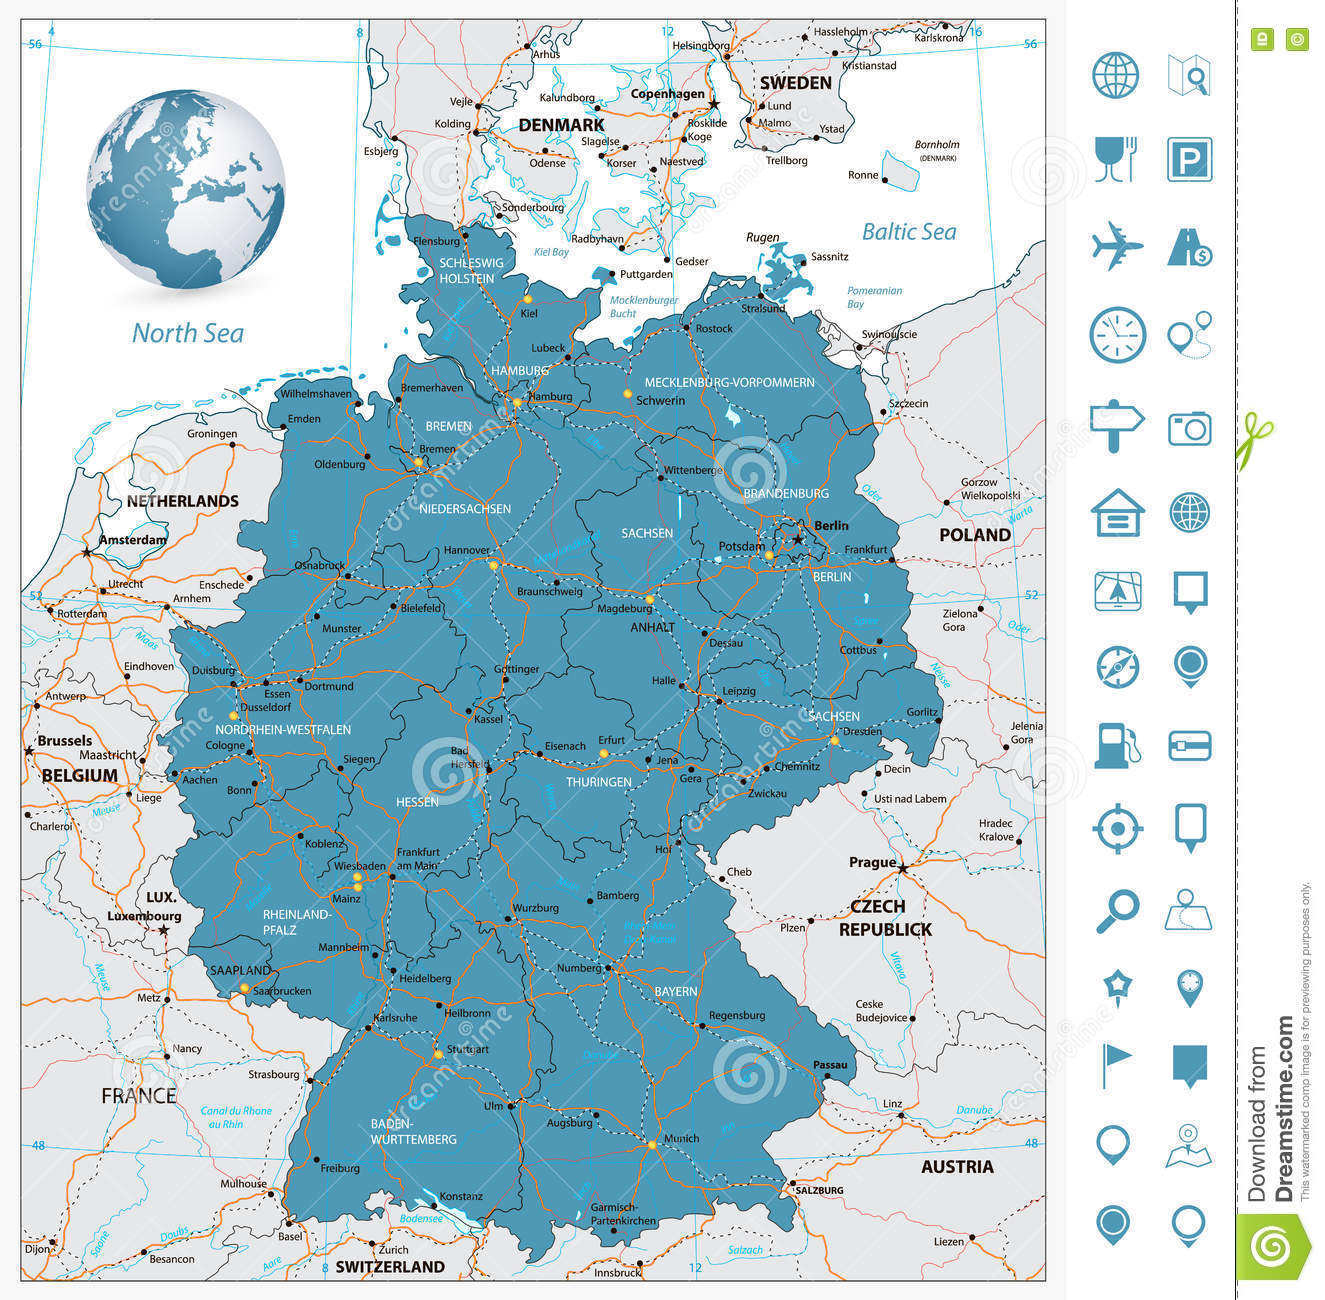 Map Of Germany With Rivers.Highly Detailed Road Map Of Germany With Rivers And Navigation Stock